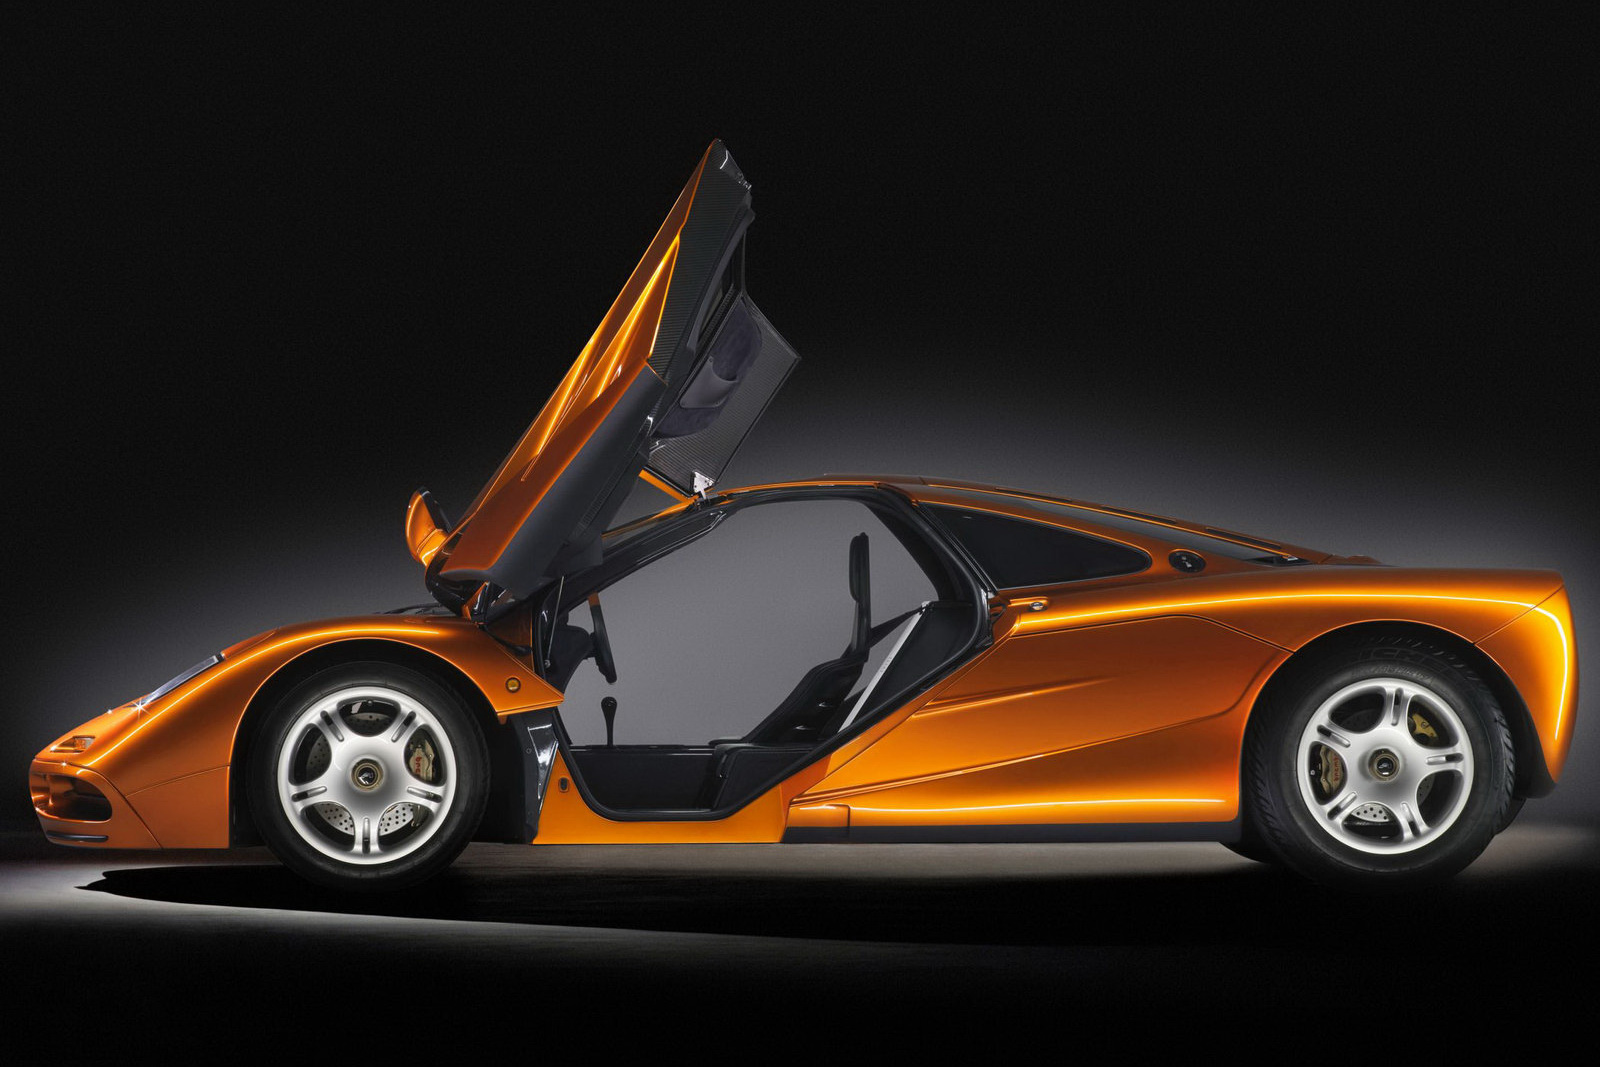 2012 McLaren Iconic F1 Successor 1 The Successor Will Come – 2012 McLaren Iconic F1 Successor!